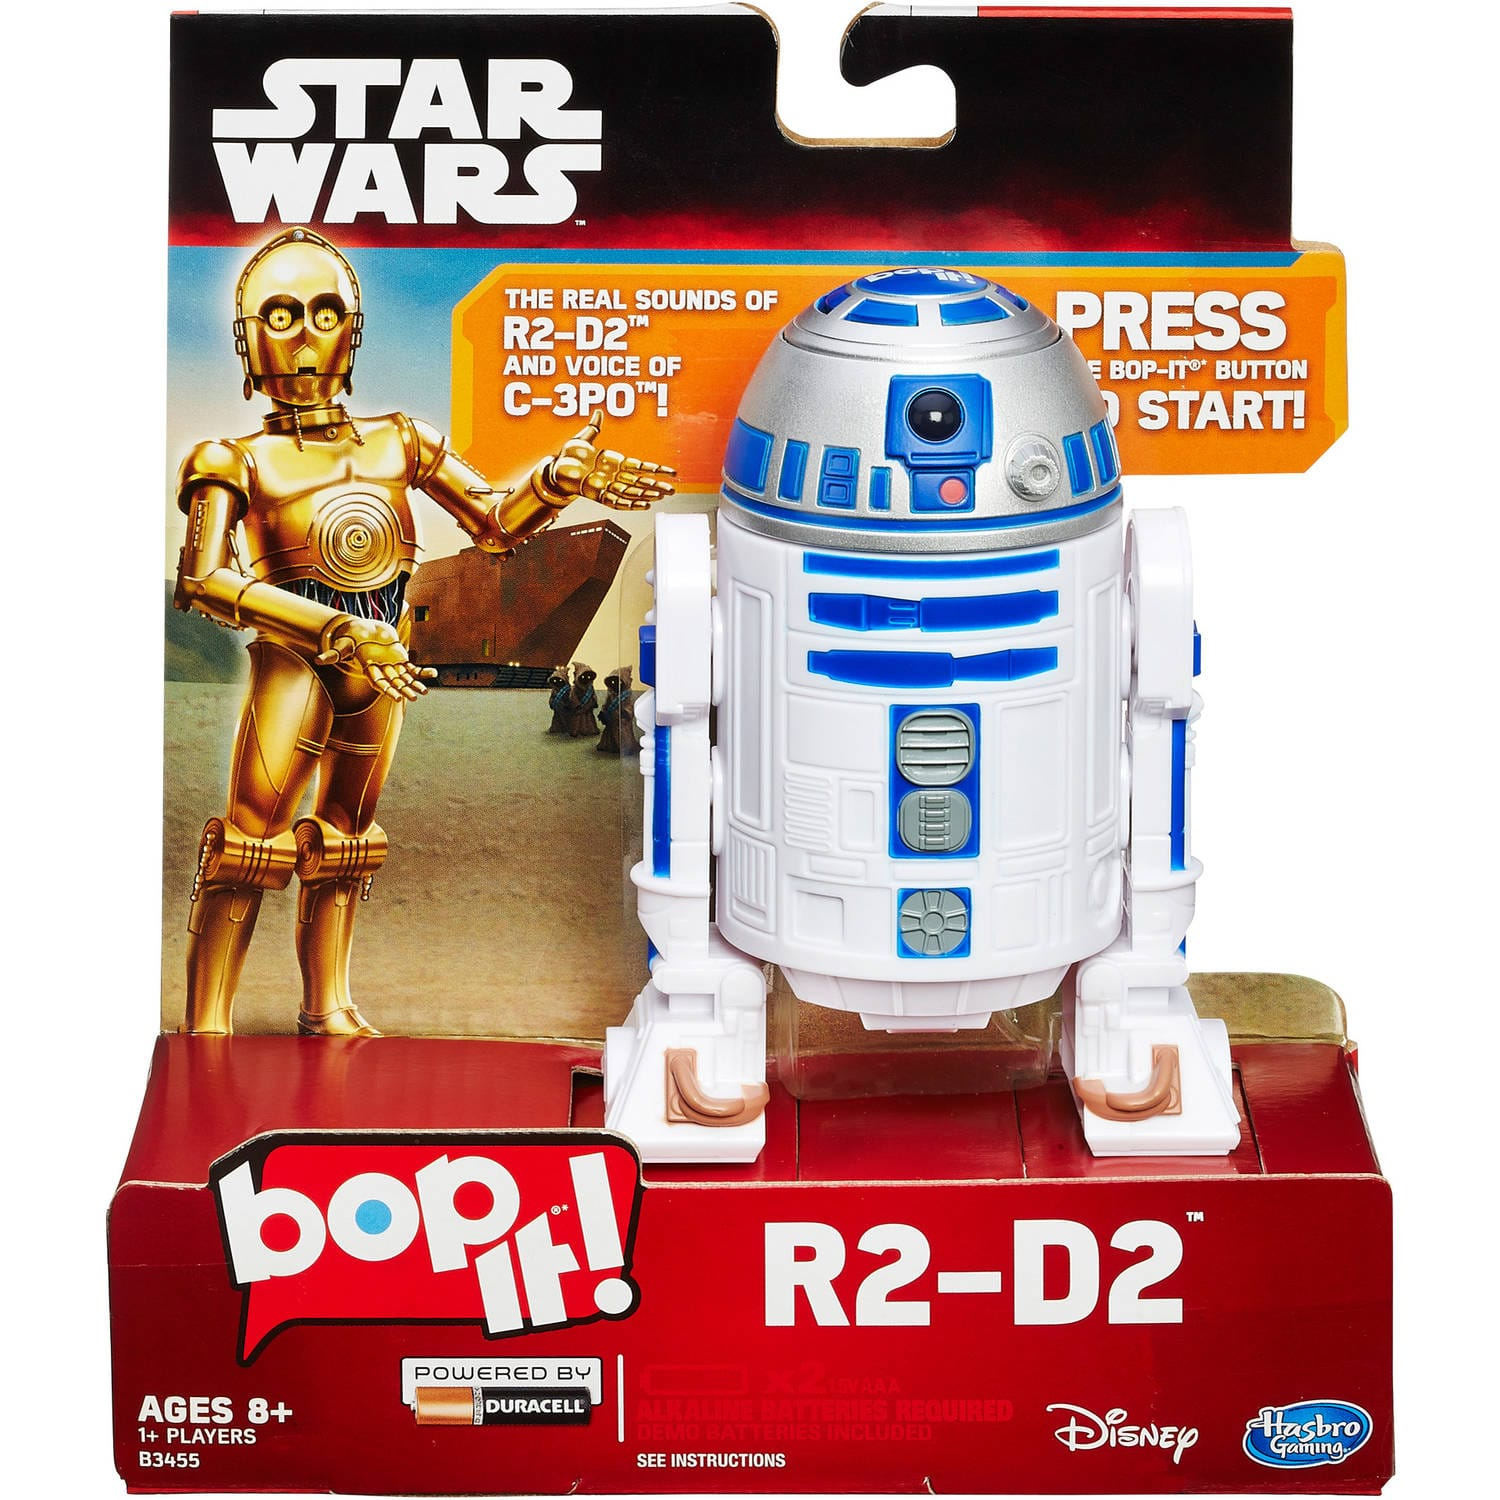 Amazon Prime: Hasbro Star Wars Bop It R2-D2 Game for $9 (or even less, YMMV)